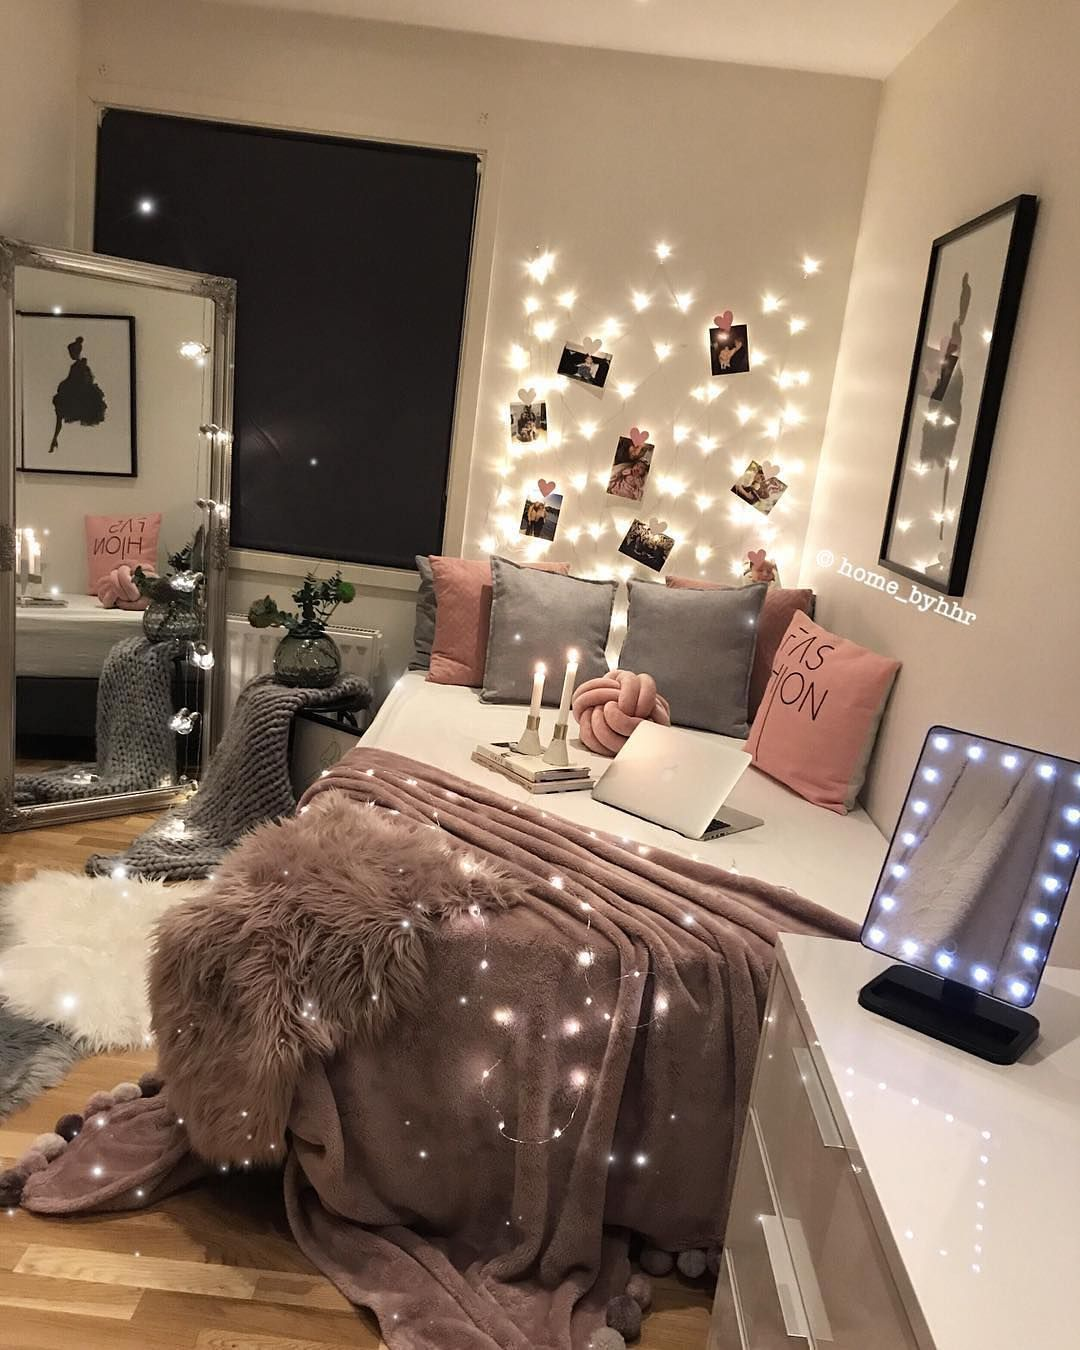 Deko Ideen Schlafzimmer Pinterest Pin By Samantha Amorsolo On Decorating Pinterest Schlafzimmer